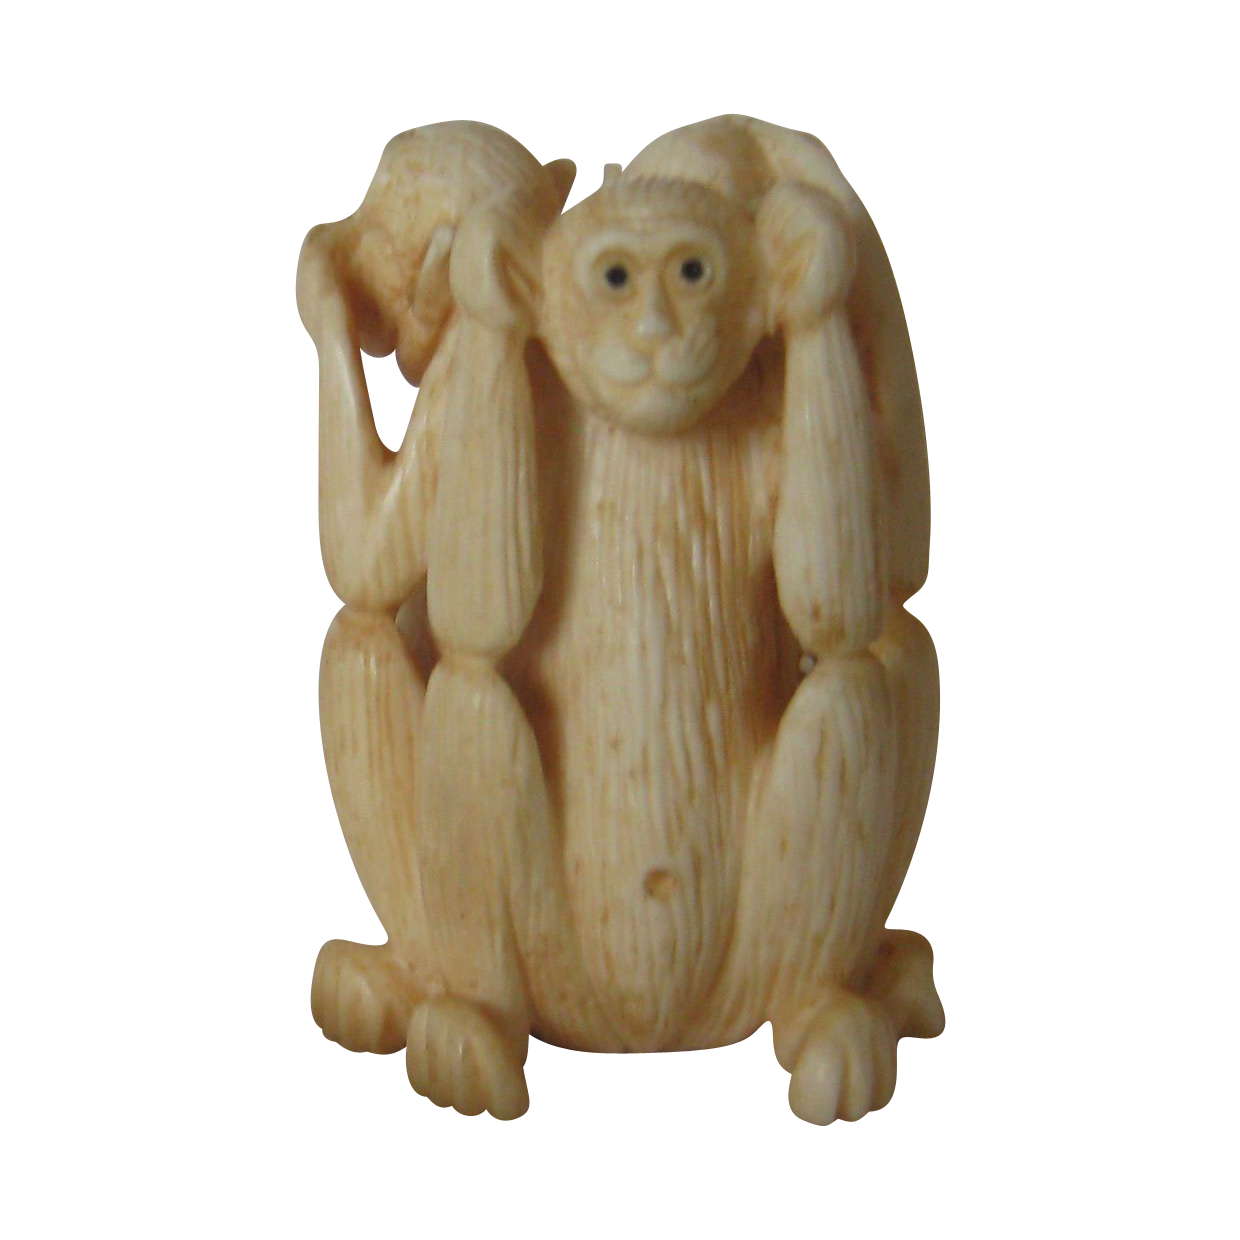 Carved Monkeys - See, Speak, Hear no  Evil